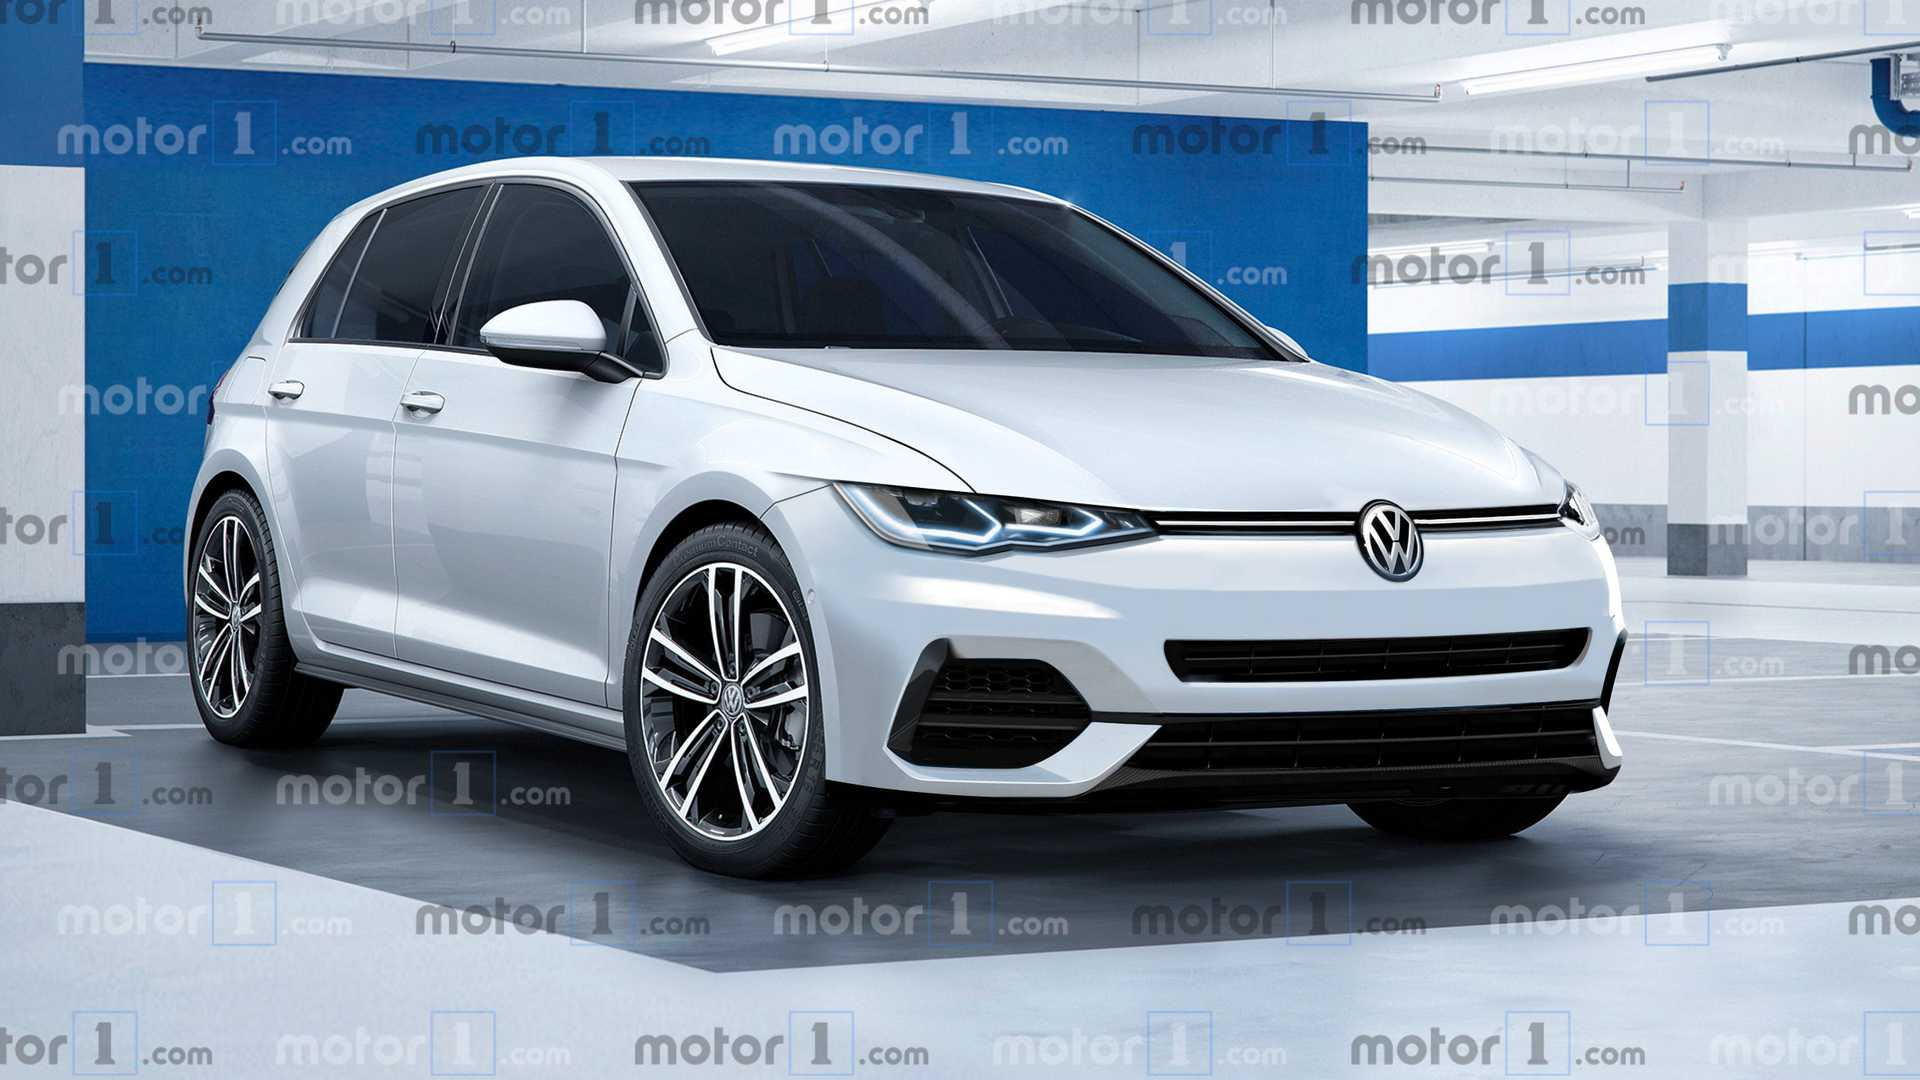 79 New Volkswagen Gti 2020 Spesification